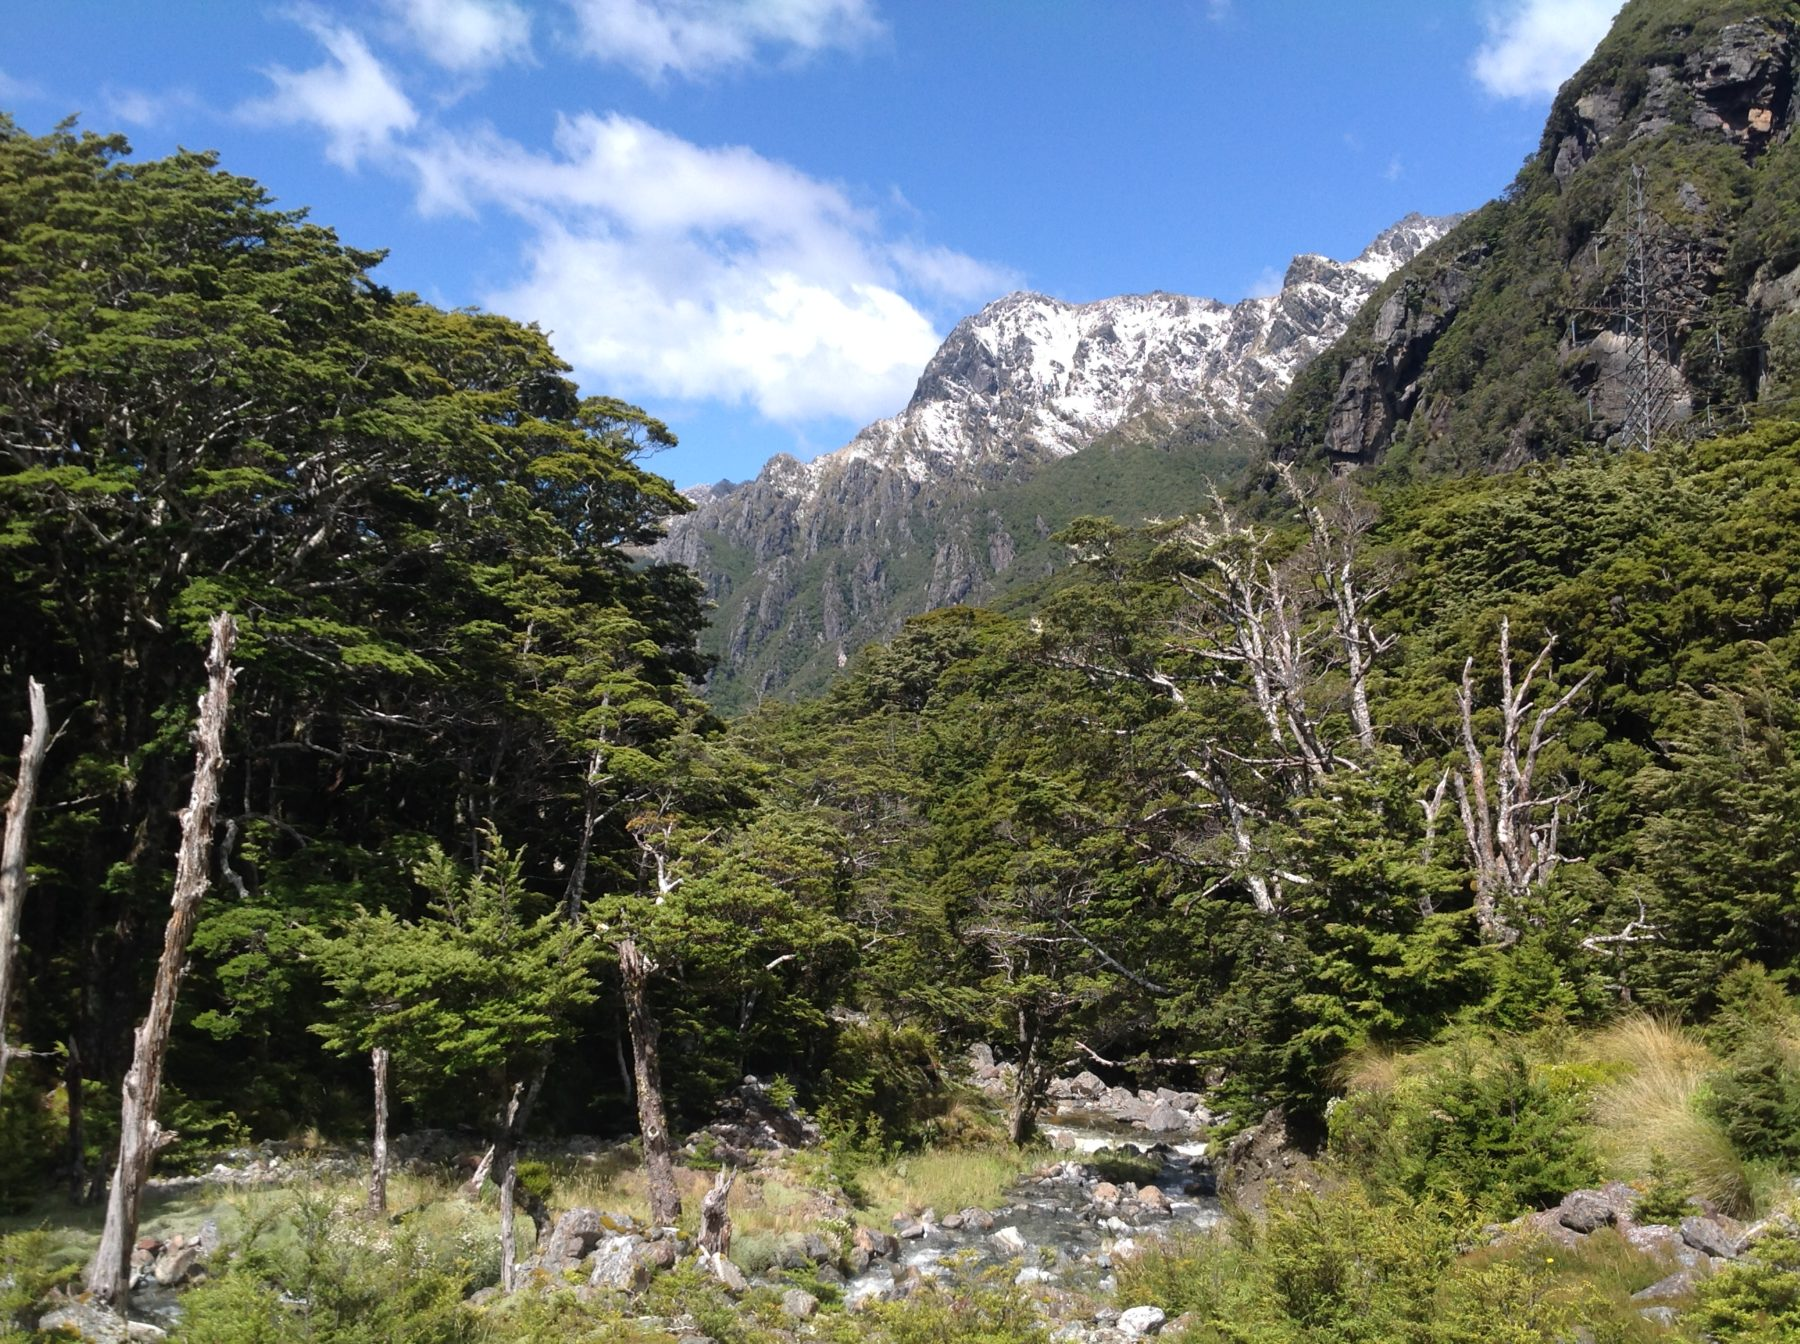 dd9d20e03d36f While concentrating on the special natural features, wildlife and plant  communitites, this trip also allows you to join the New Zealand Alpine  Garden ...